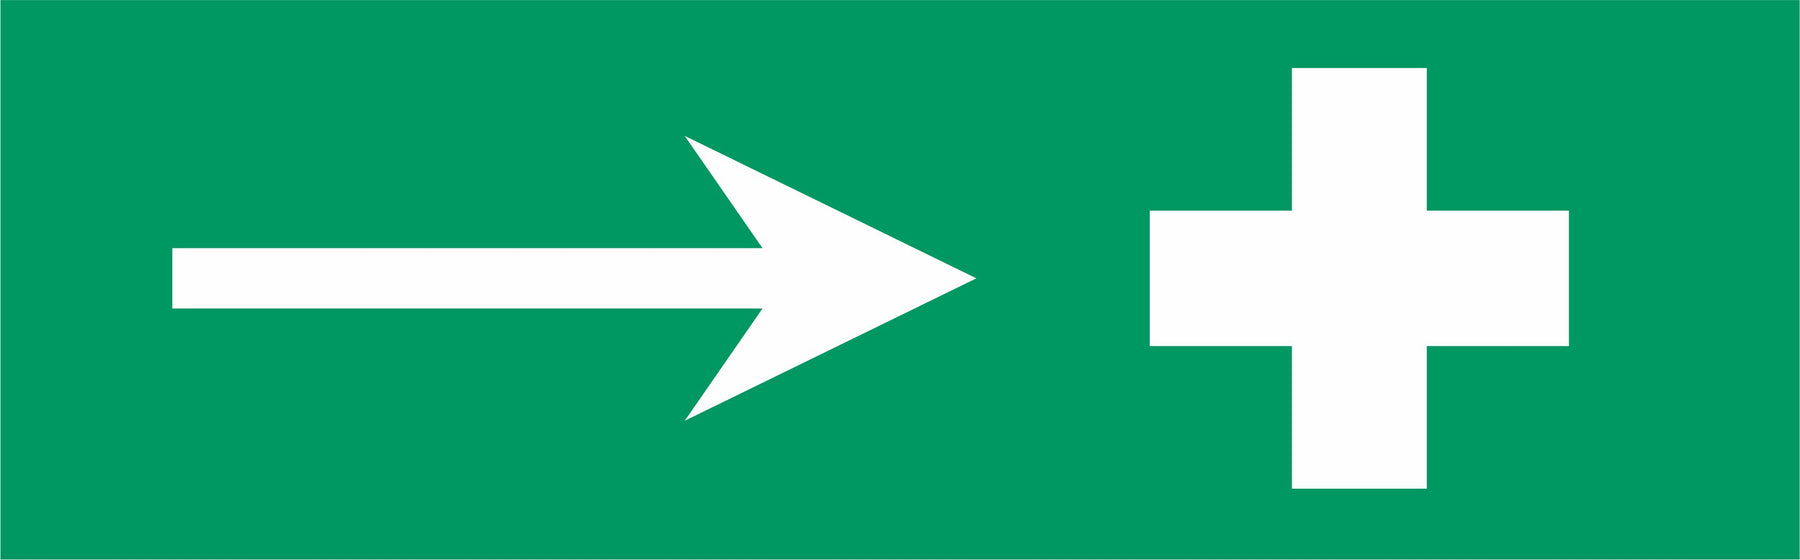 First aid symbol - arrow right